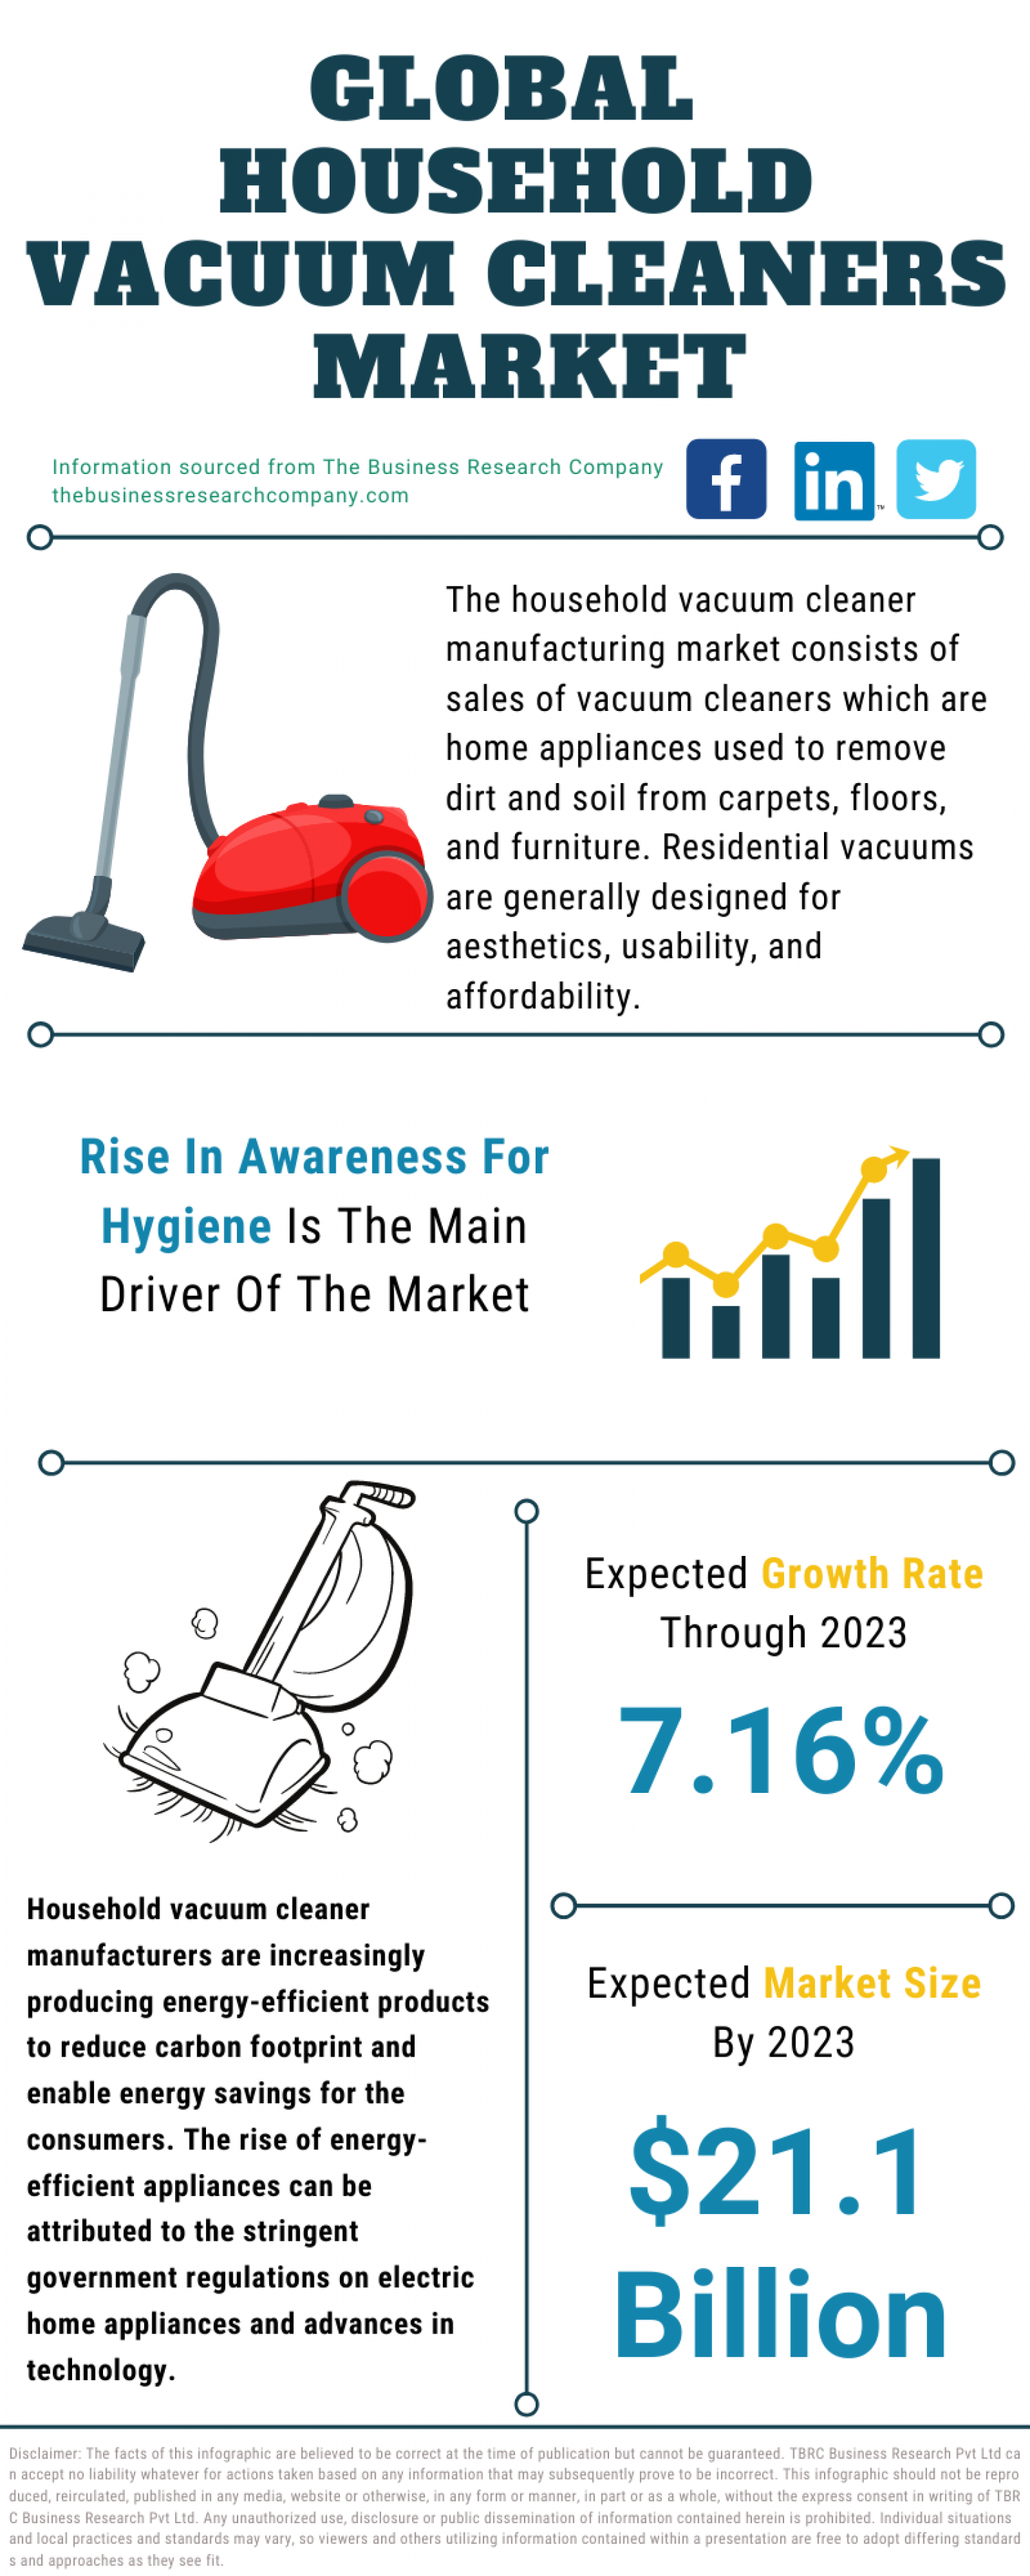 Household Vacuum Cleaners Market 2021 - Business Overview, Trends Analysis, Challenges And Future Prospects To 2030 Infographic